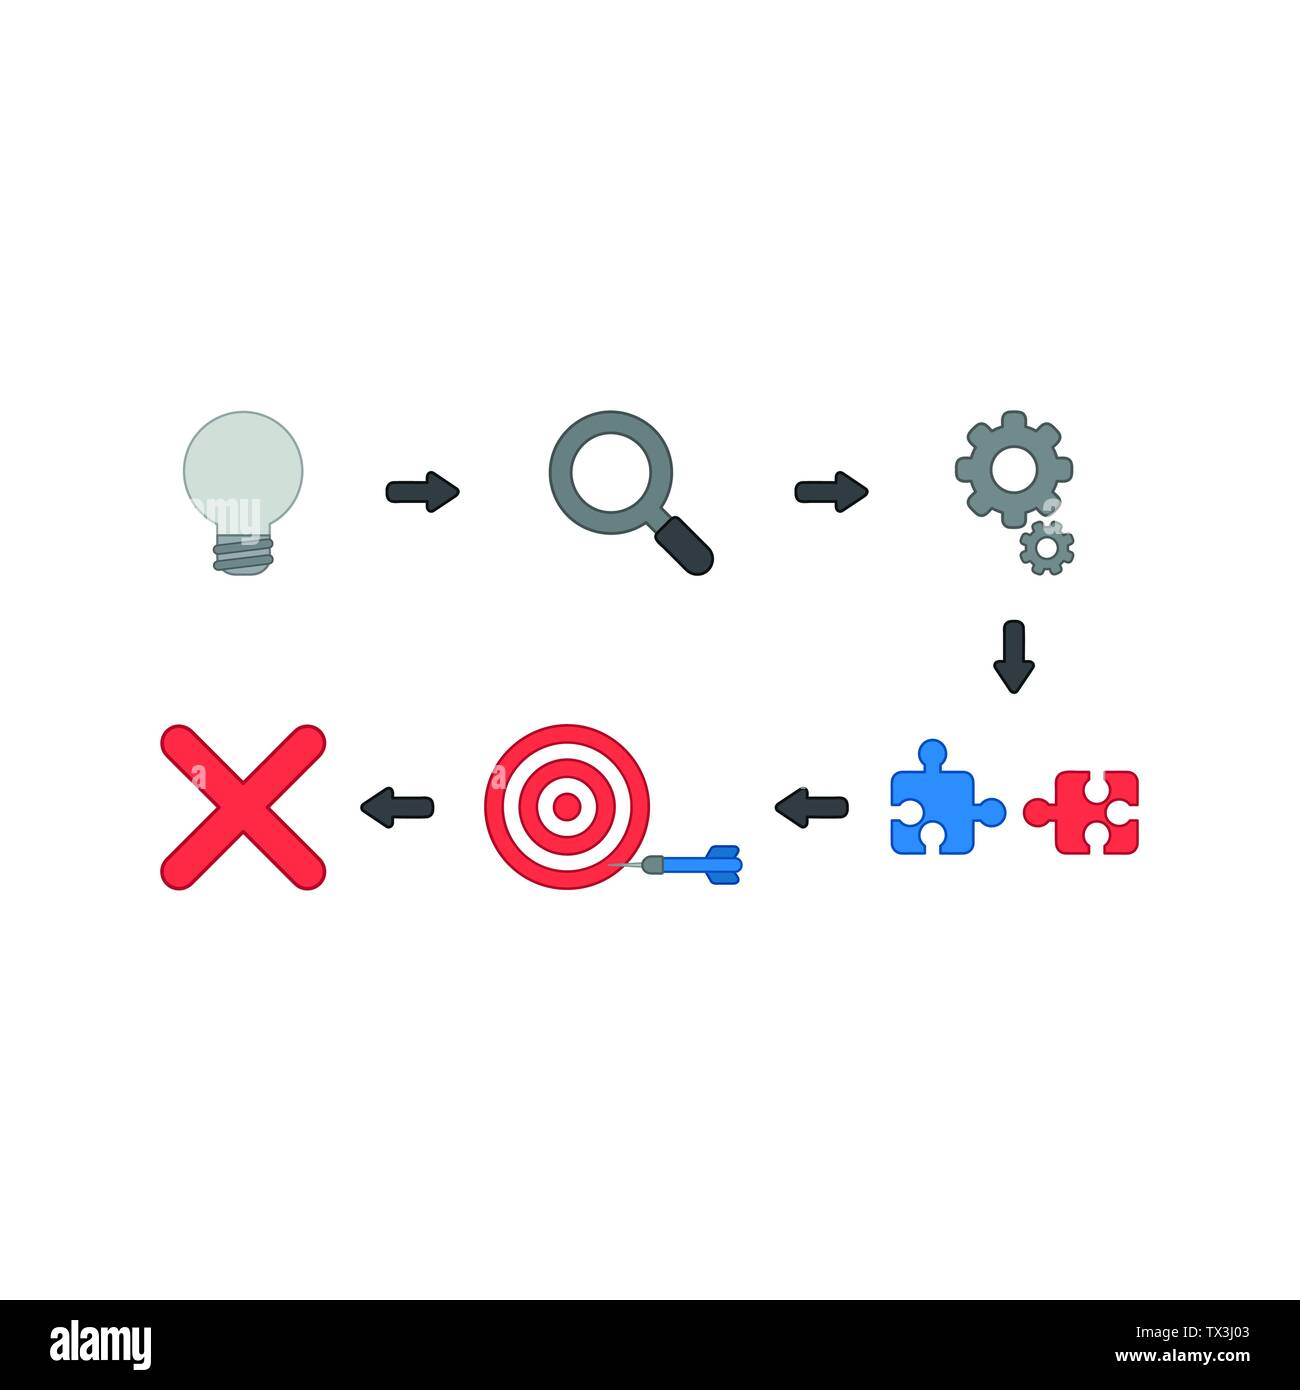 Vector icon concept of unsuccess with grey light bulb bad idea, magnifying glass, gears, incompatible jigsaw puzzle pieces, bulls eye and dart in the Stock Vector